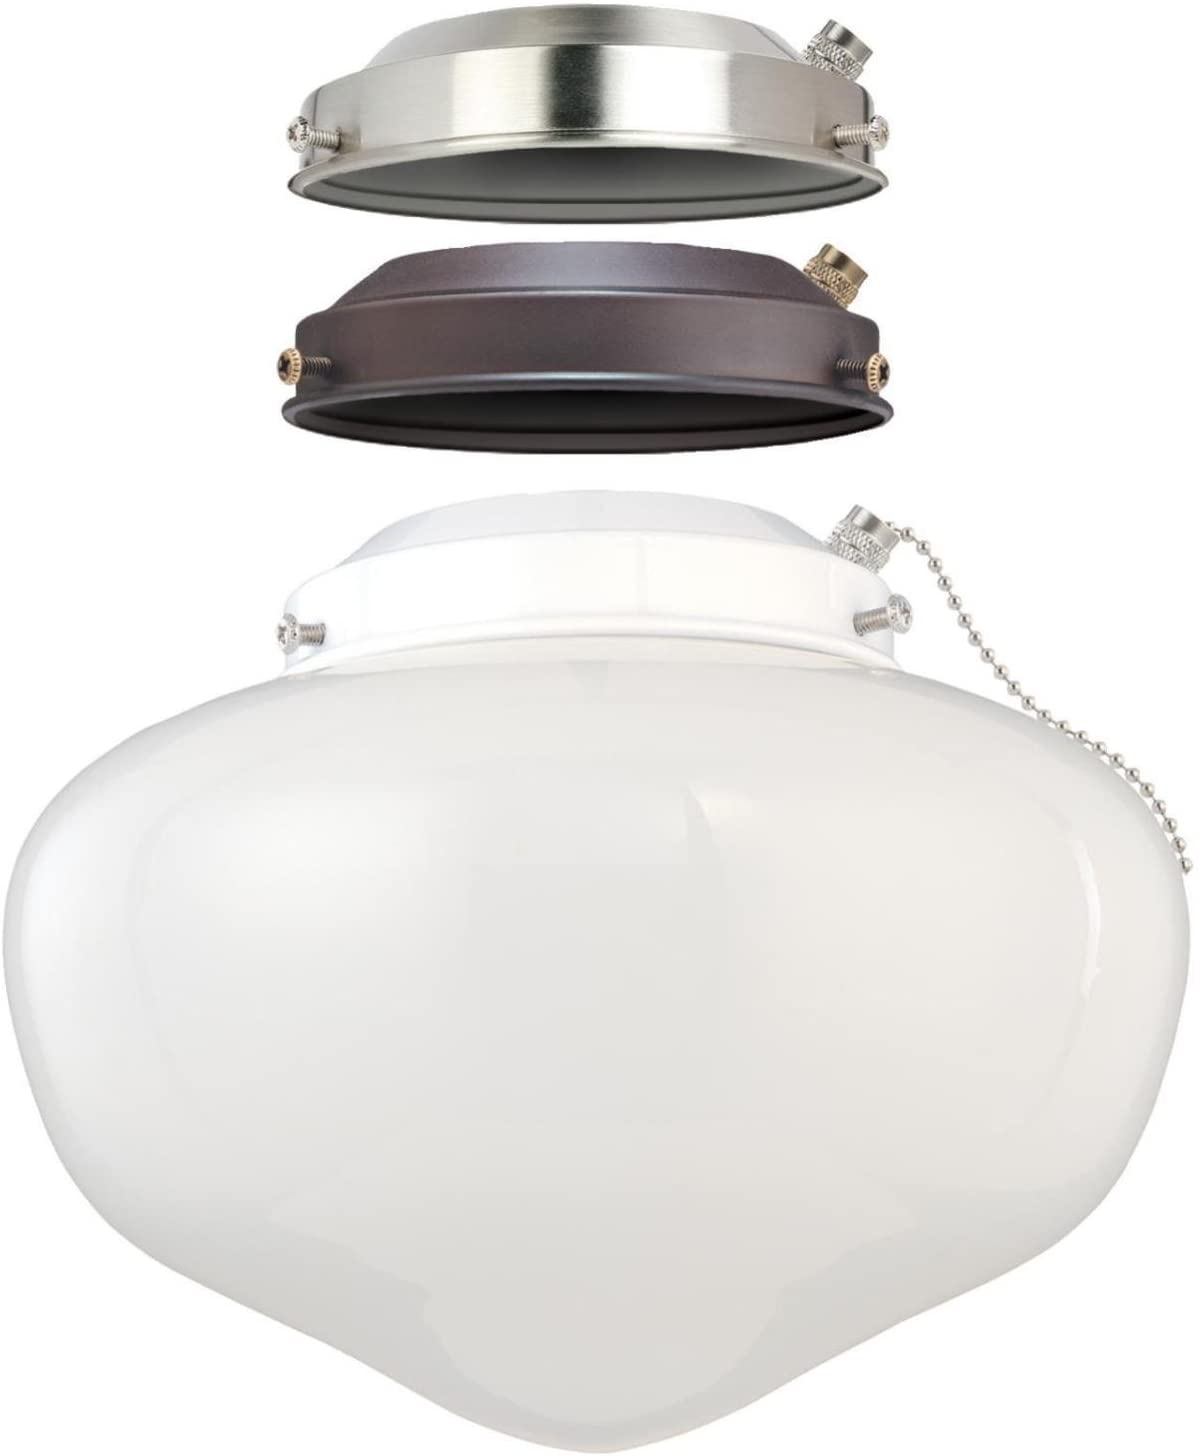 Westinghouse Lighting 7785200 Led Schoolhouse Indoor Outdoor Energy Star Ceiling Fan Light Kit Three Fitters With White Opal Glass Amazon Com